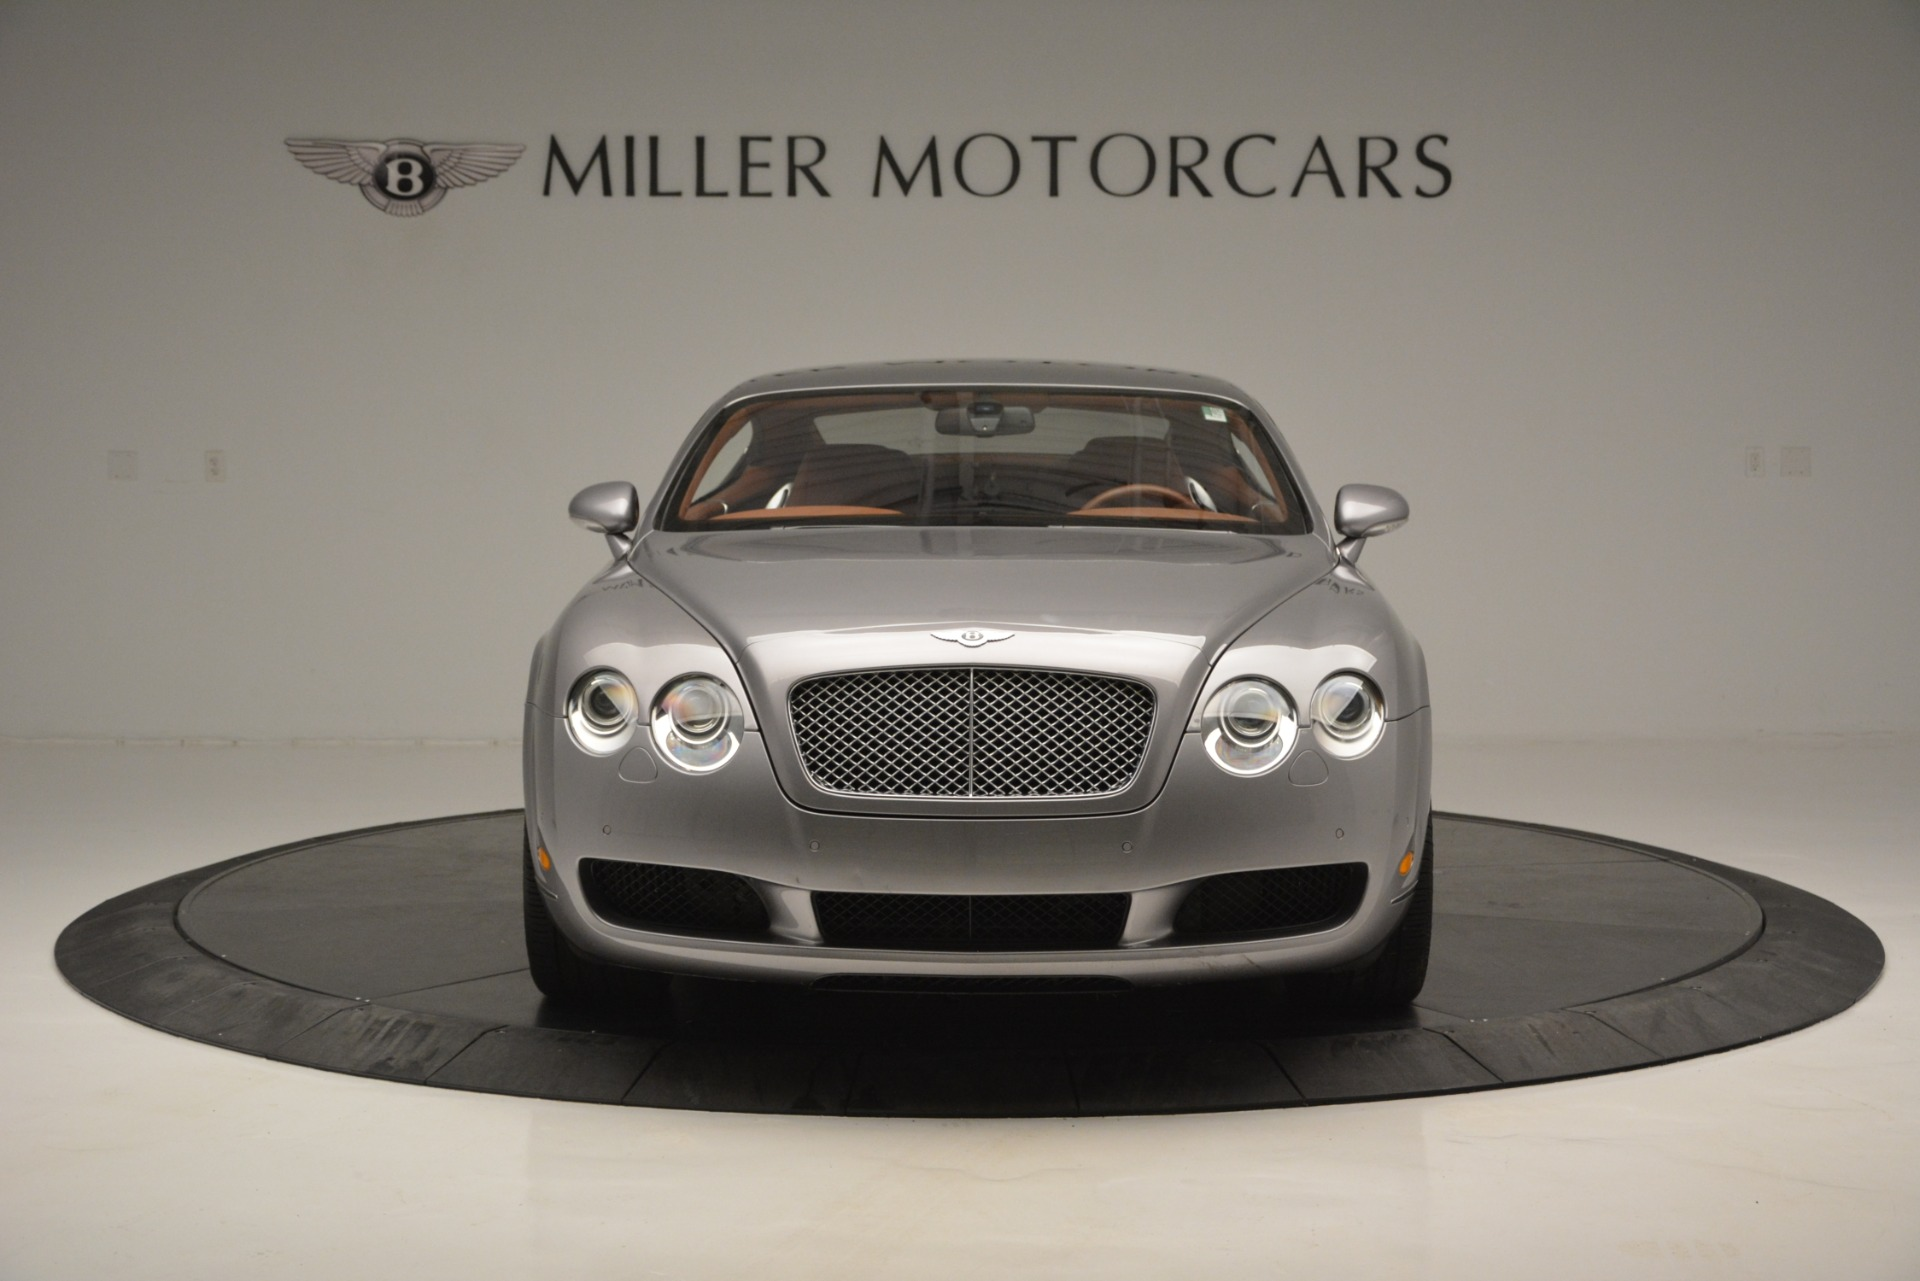 Used 2005 Bentley Continental GT GT Turbo For Sale In Westport, CT 2726_p12